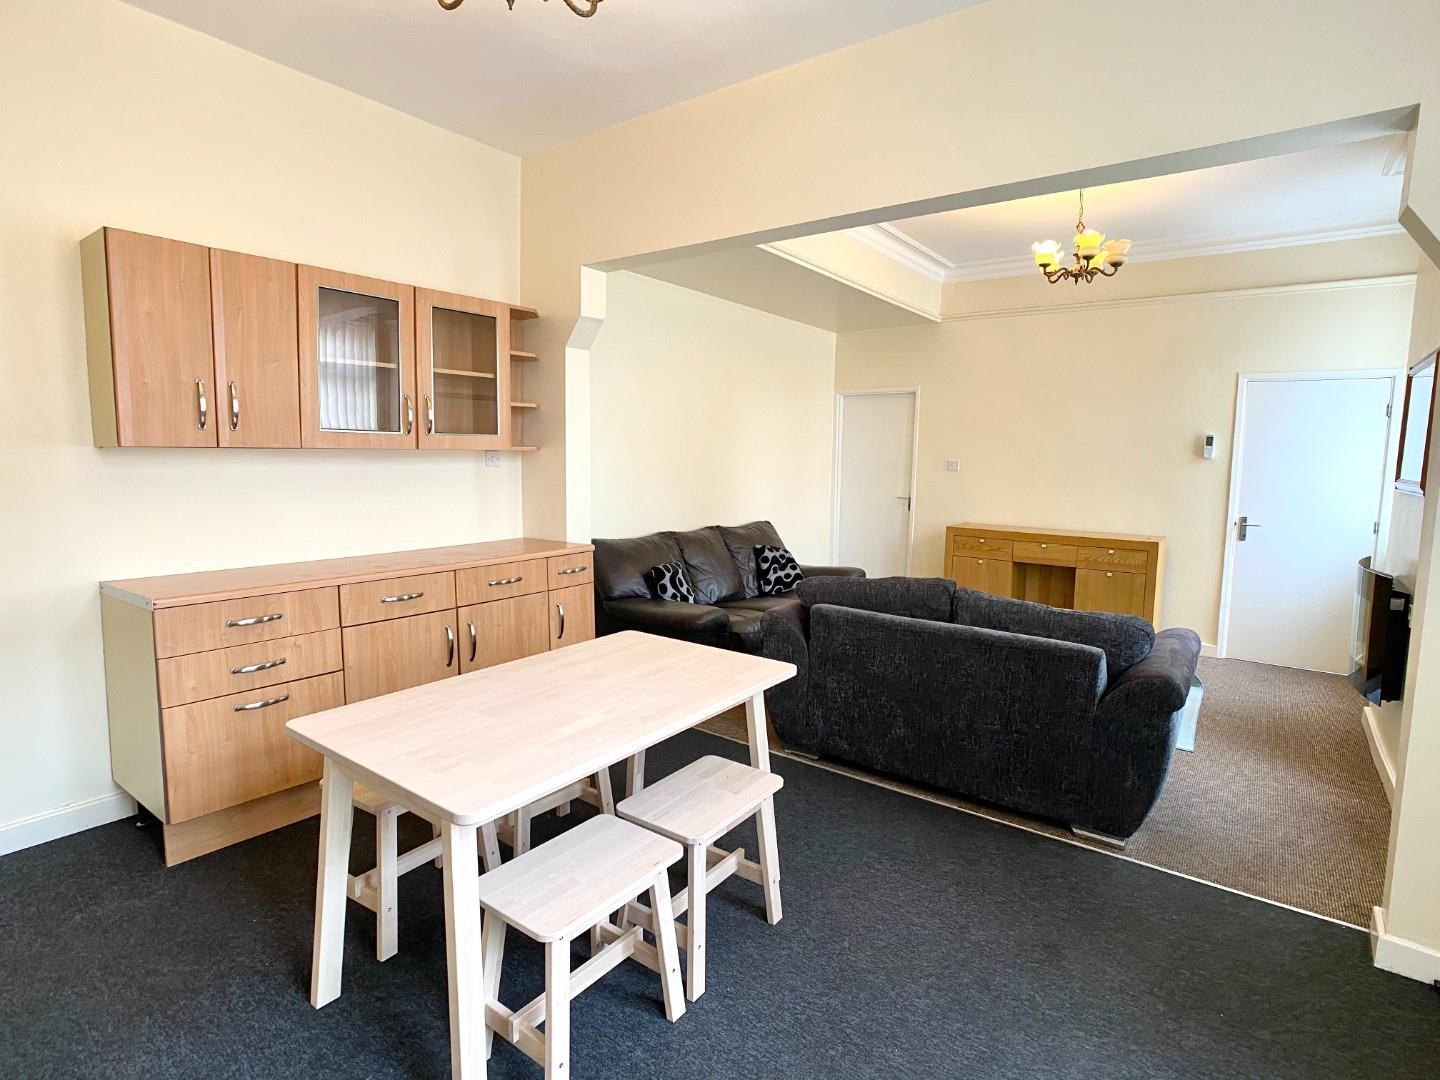 3 bed private halls to rent in Ashfields New Road, Newcastle - Property Image 1